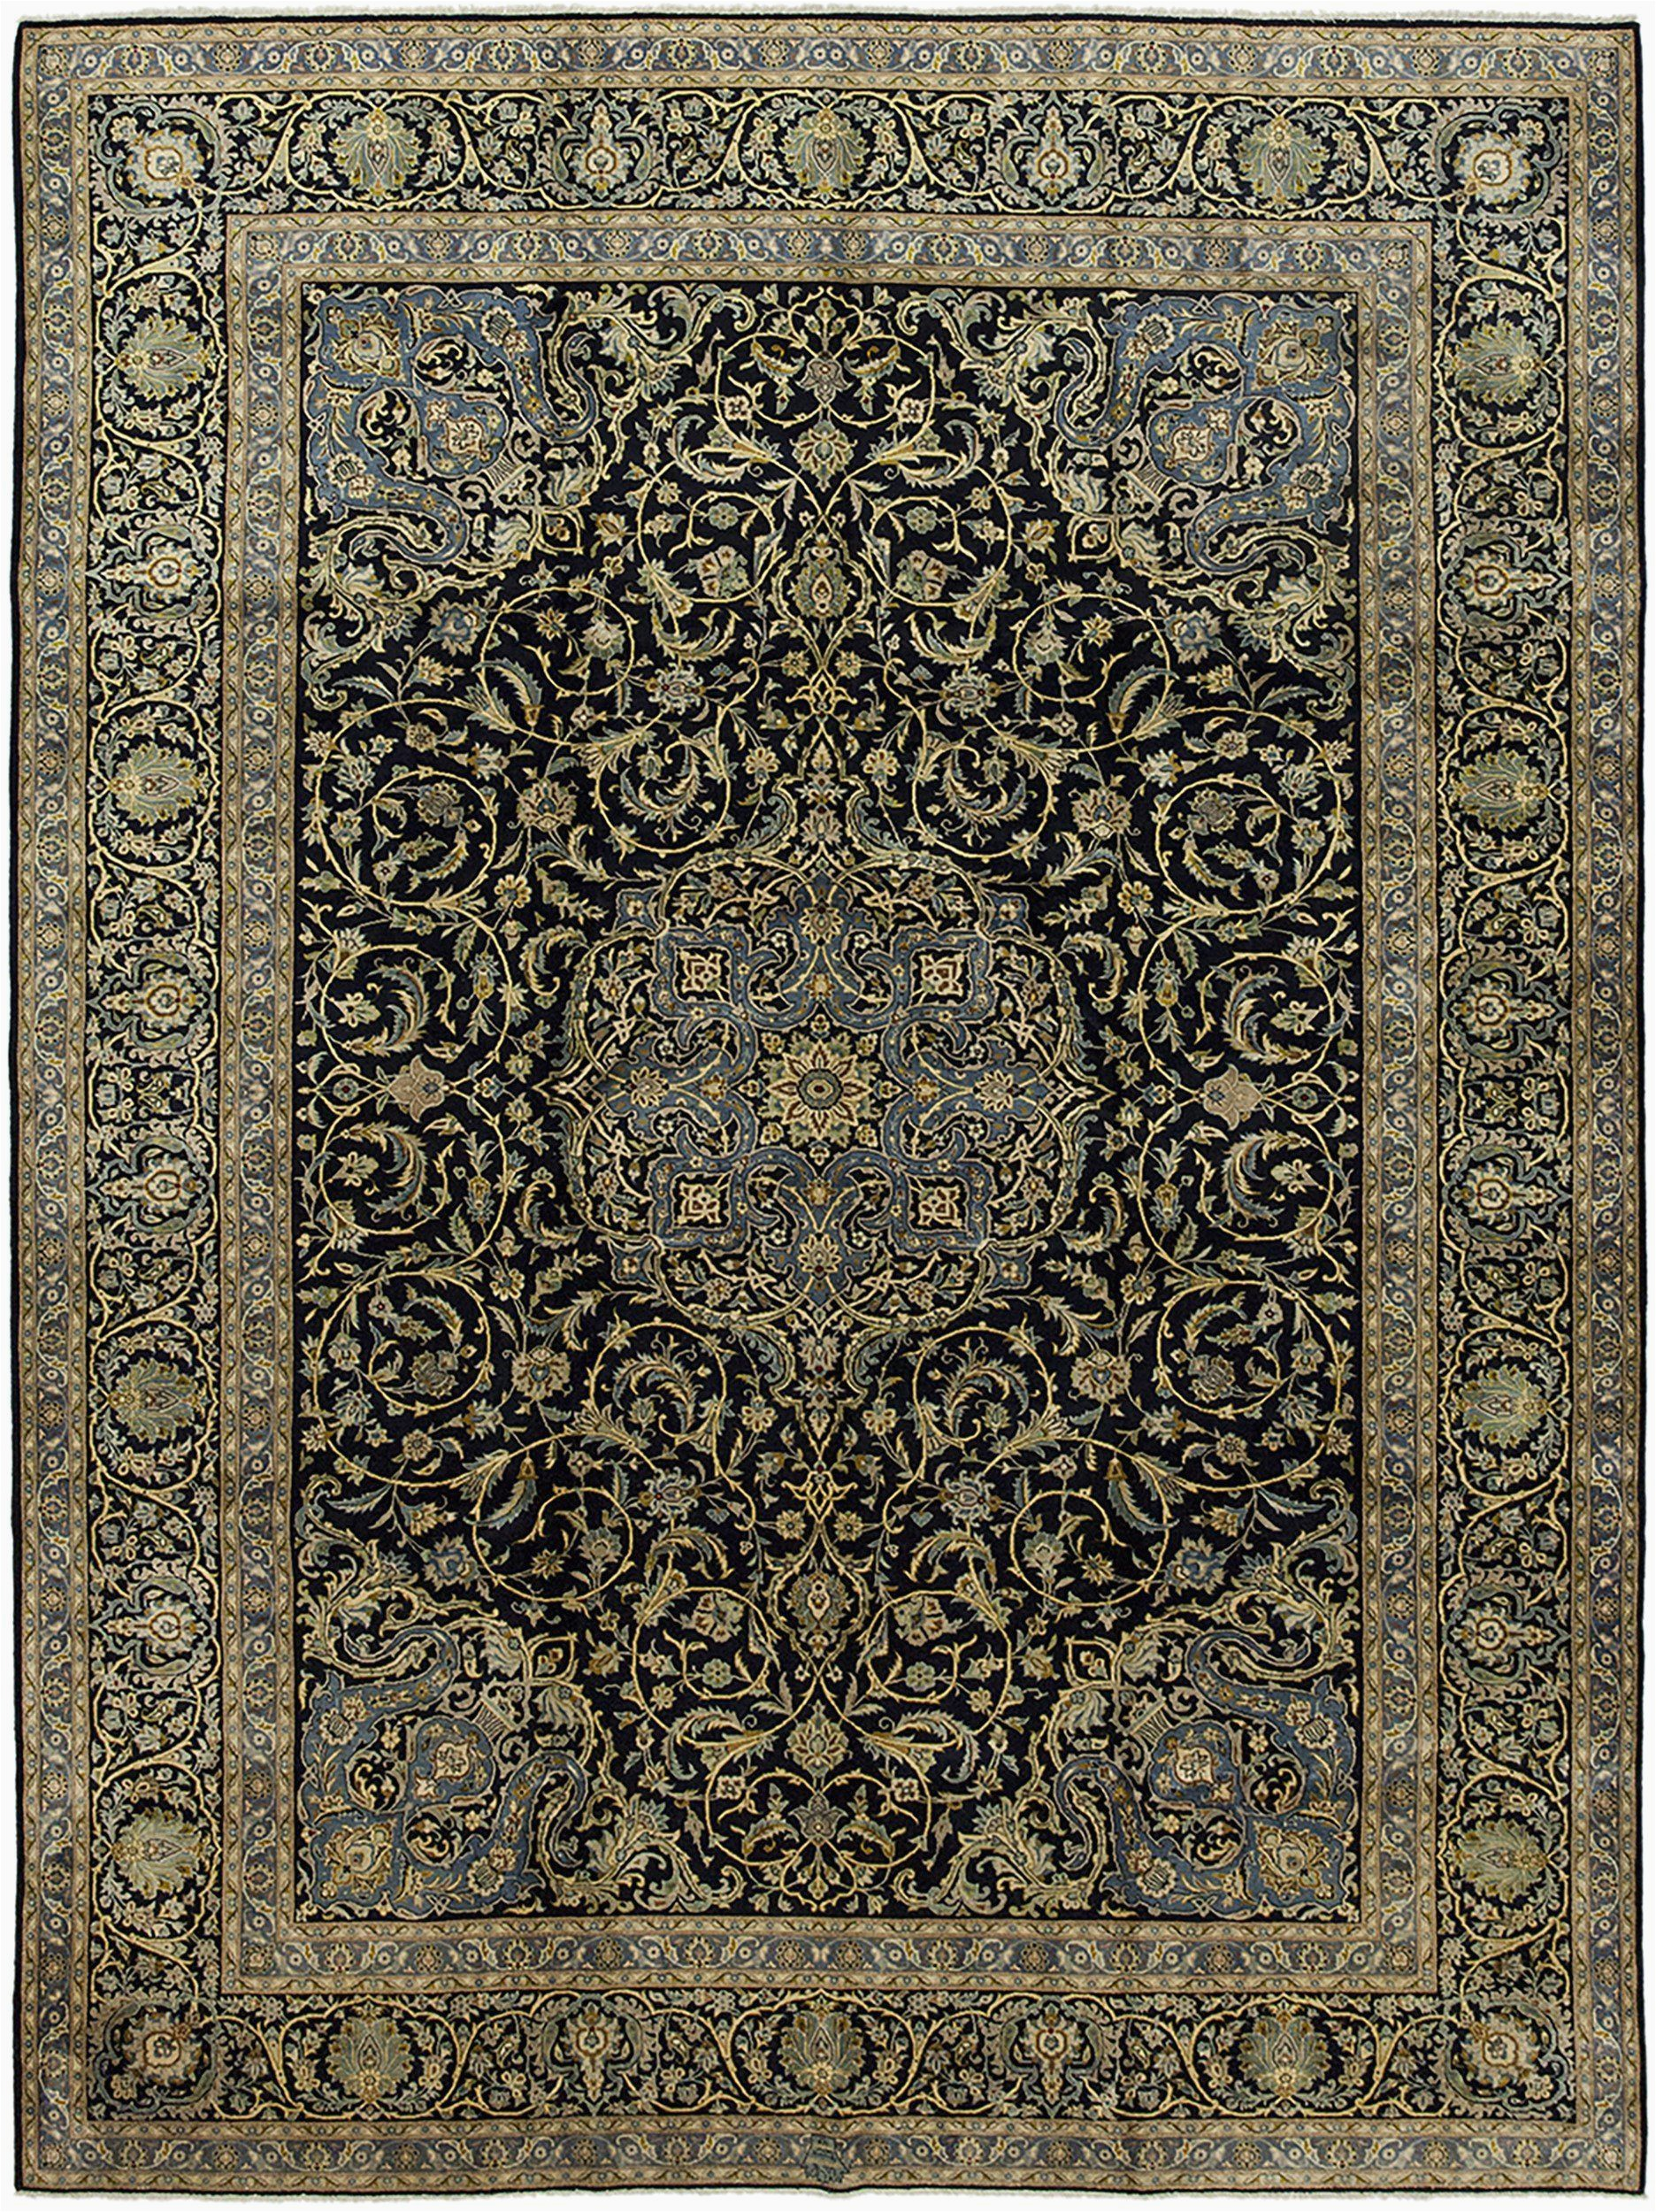 8 X 14 area Rug Hand Knotted Kashan Rectangle area Rug Design M5675